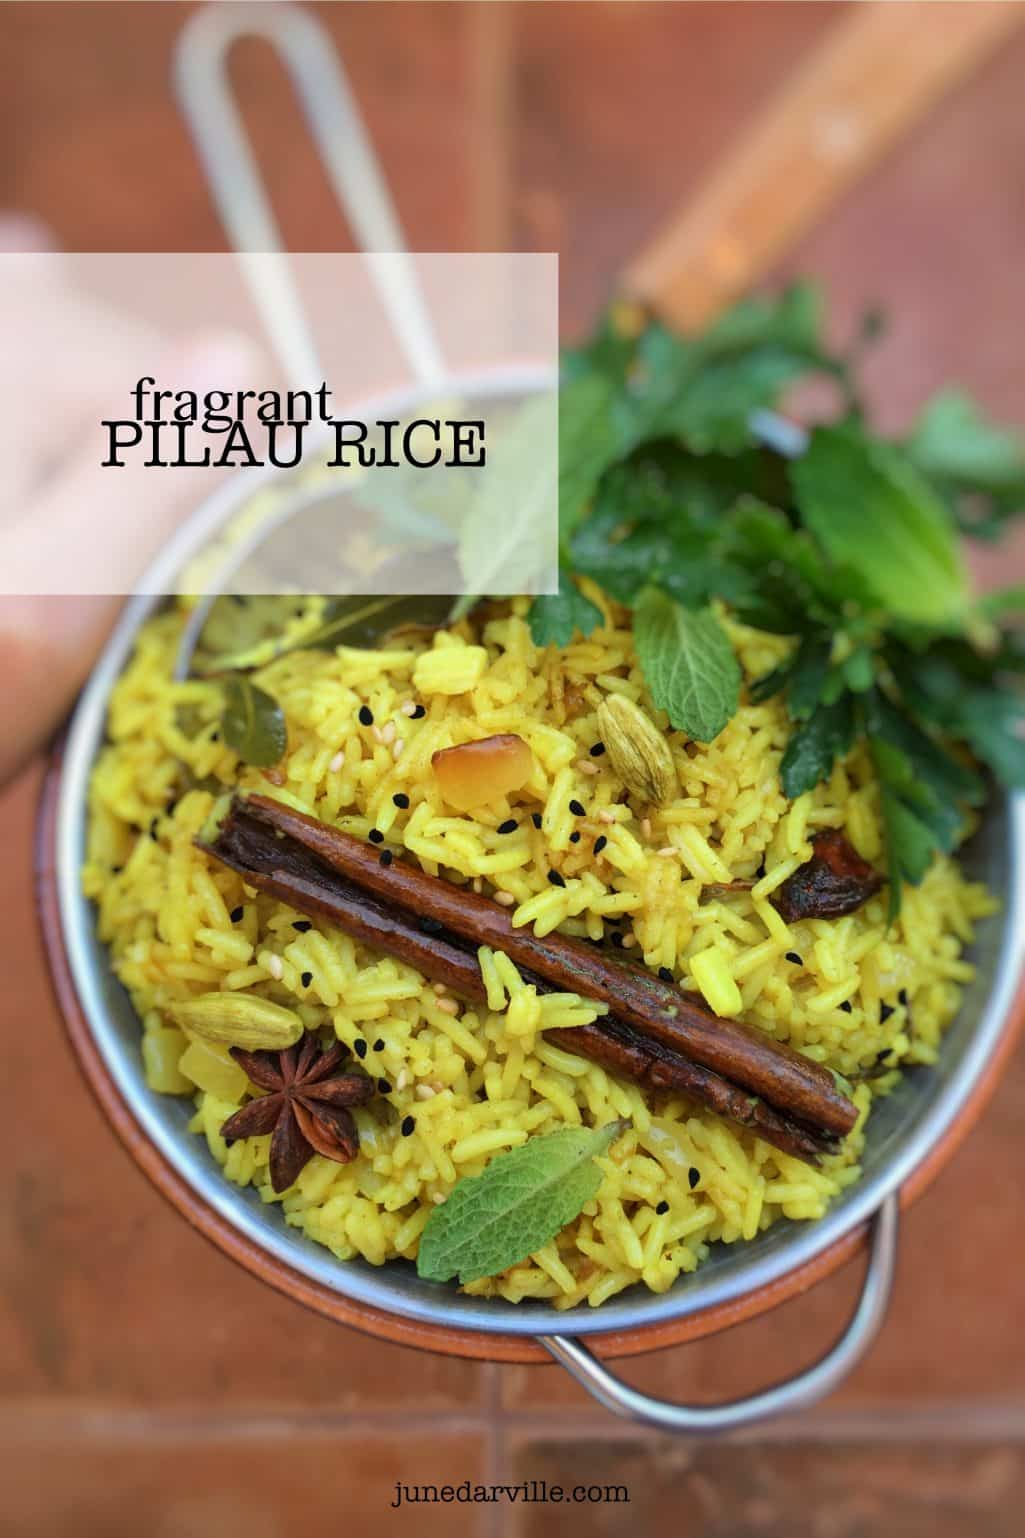 Pilau Rice Recipe (Eastern Fragrant Rice)